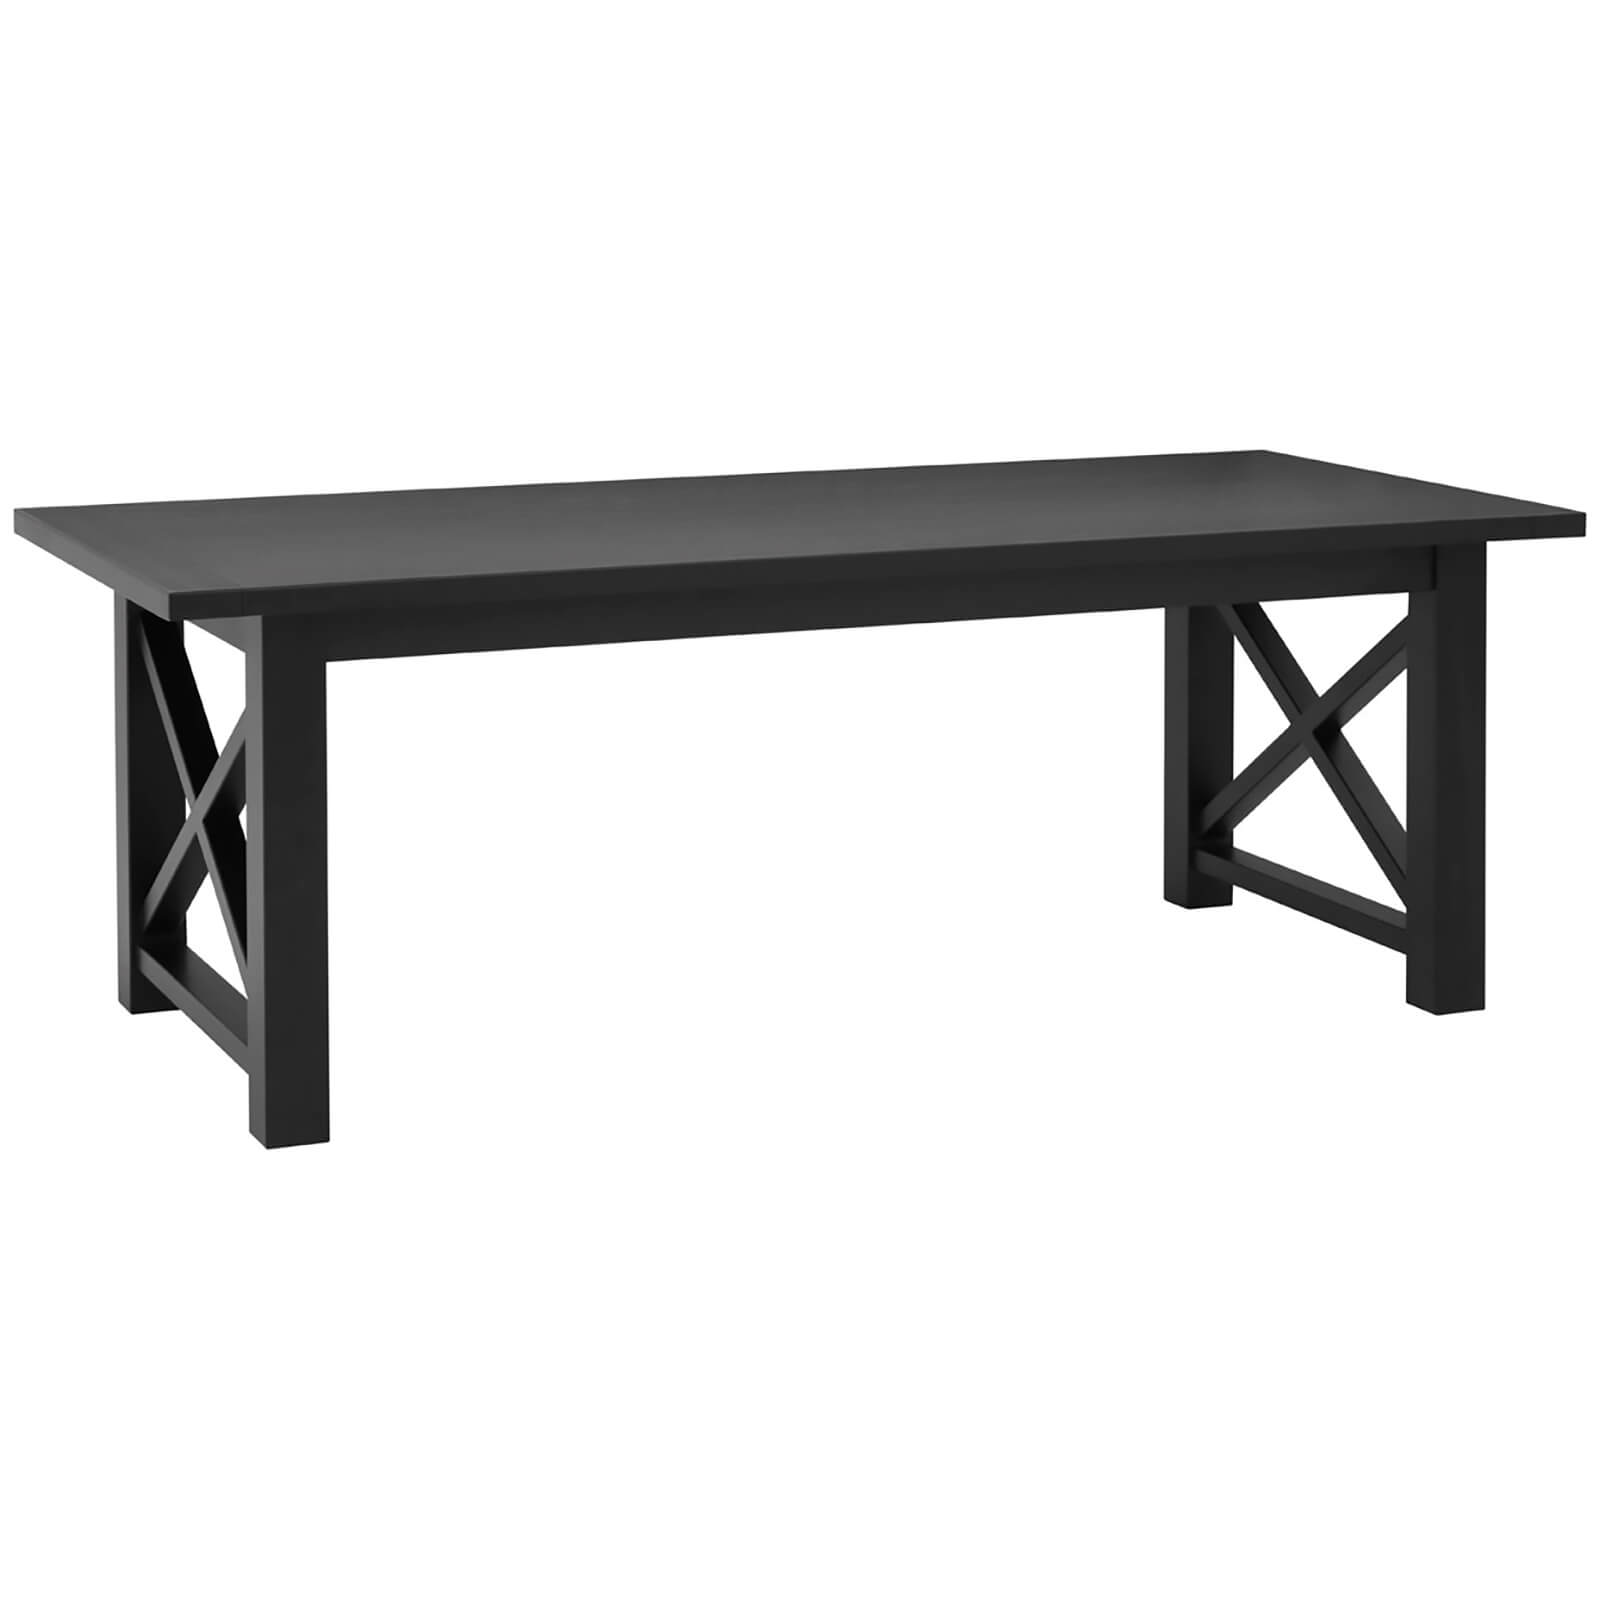 Lyon Dining Table - Black/Oak Wood